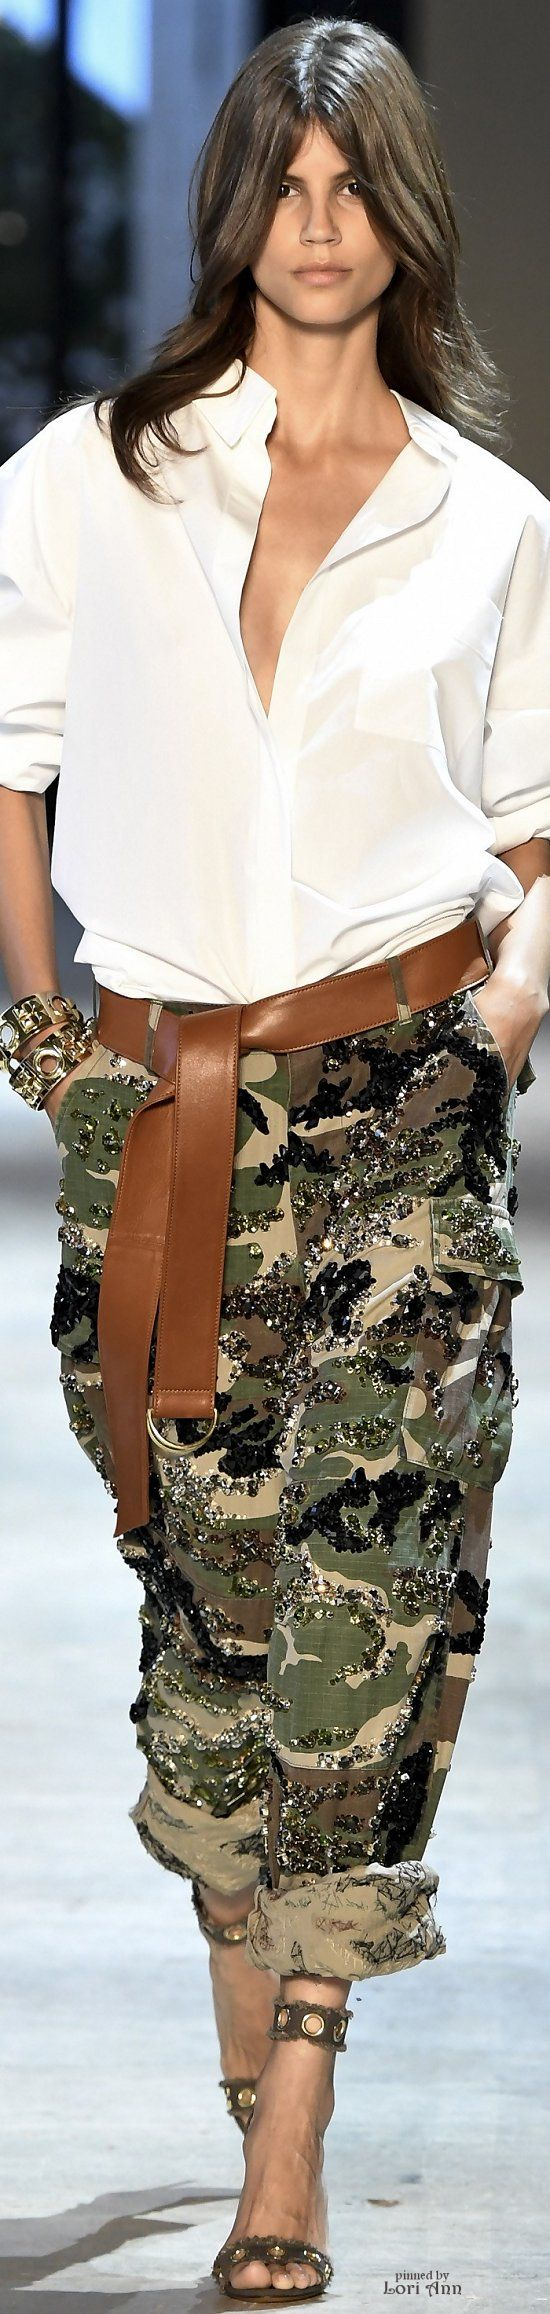 Alexandre Vauthier Couture F-16: white shirt, camo pants with sequins.